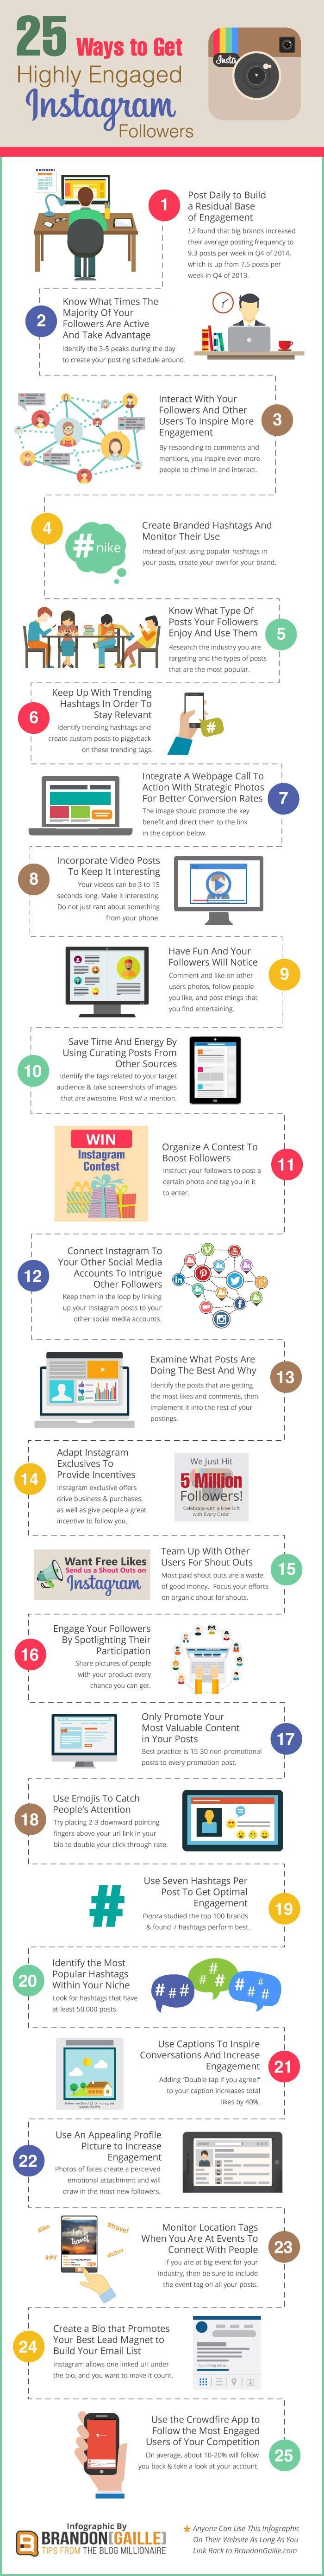 With all of the changes to the Facebook news feed algorithm, businesses are now focusing on building their Instagram followers and engagement. I am going to lay out the 25 techniques, used by Instagram pros, that will help you get tens of thousands of highly engaged followers.